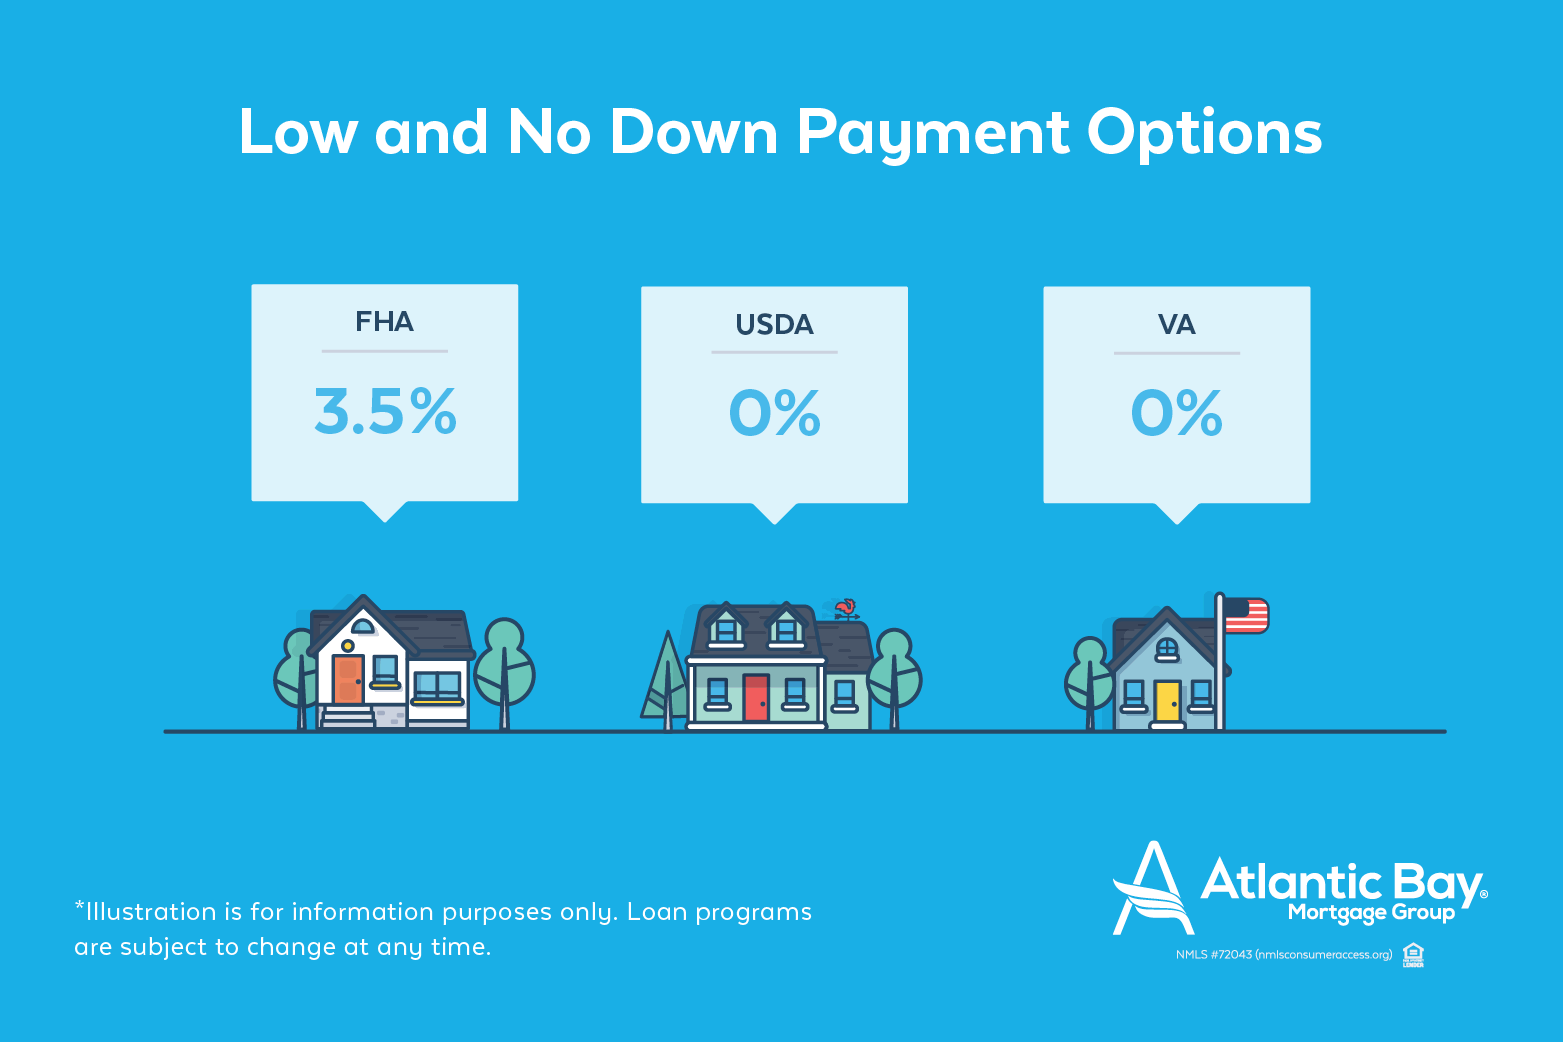 Low and No Downpayment Options